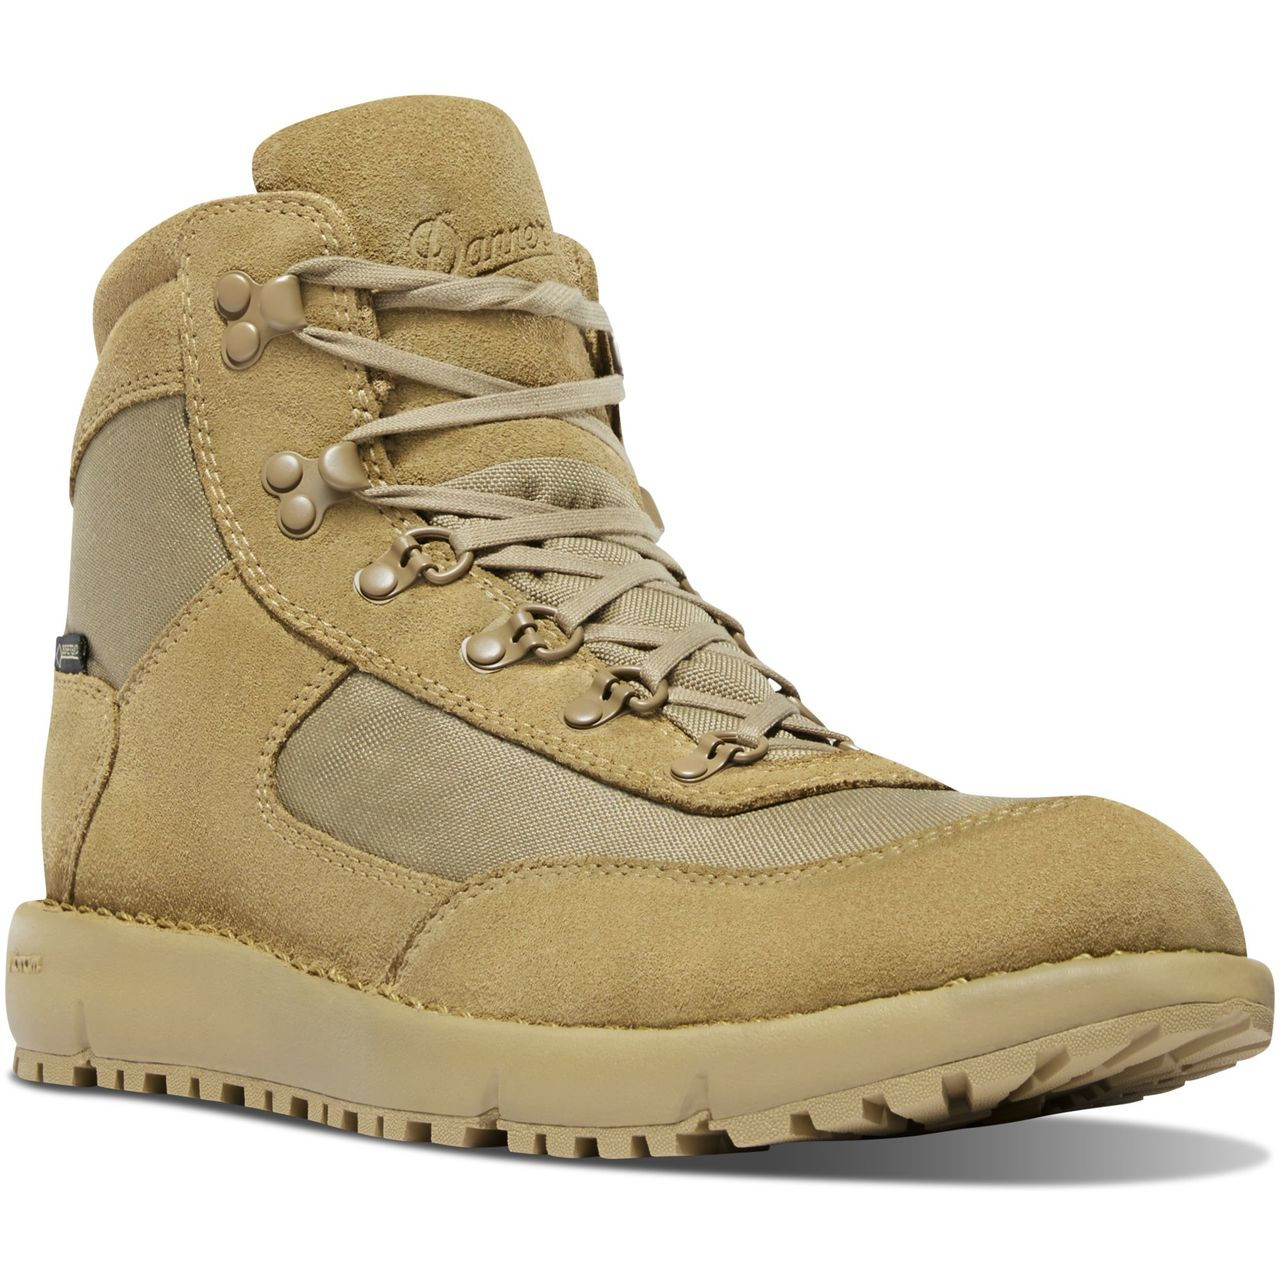 2b71efc3761 Danner Feather Light 917, Mojave